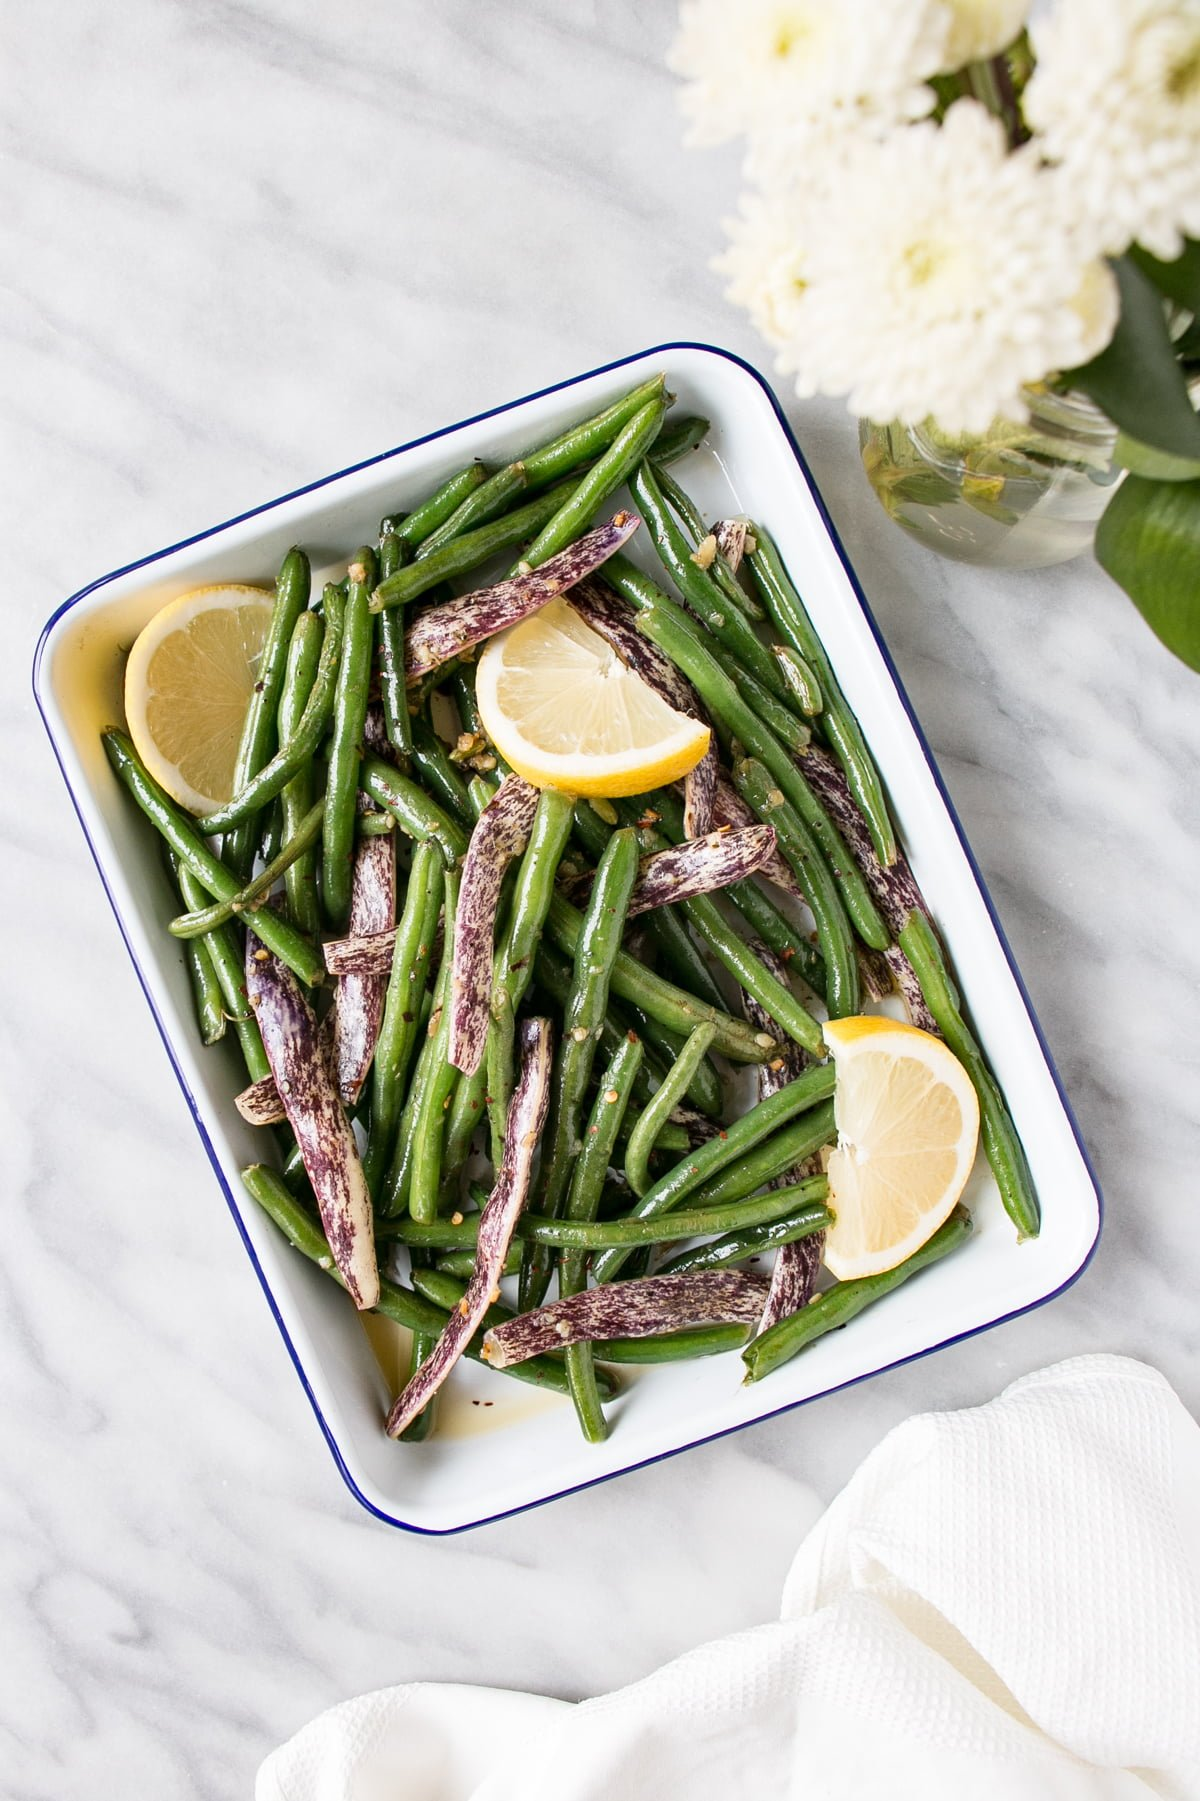 Garlicky Green Beans in a white serving tray.